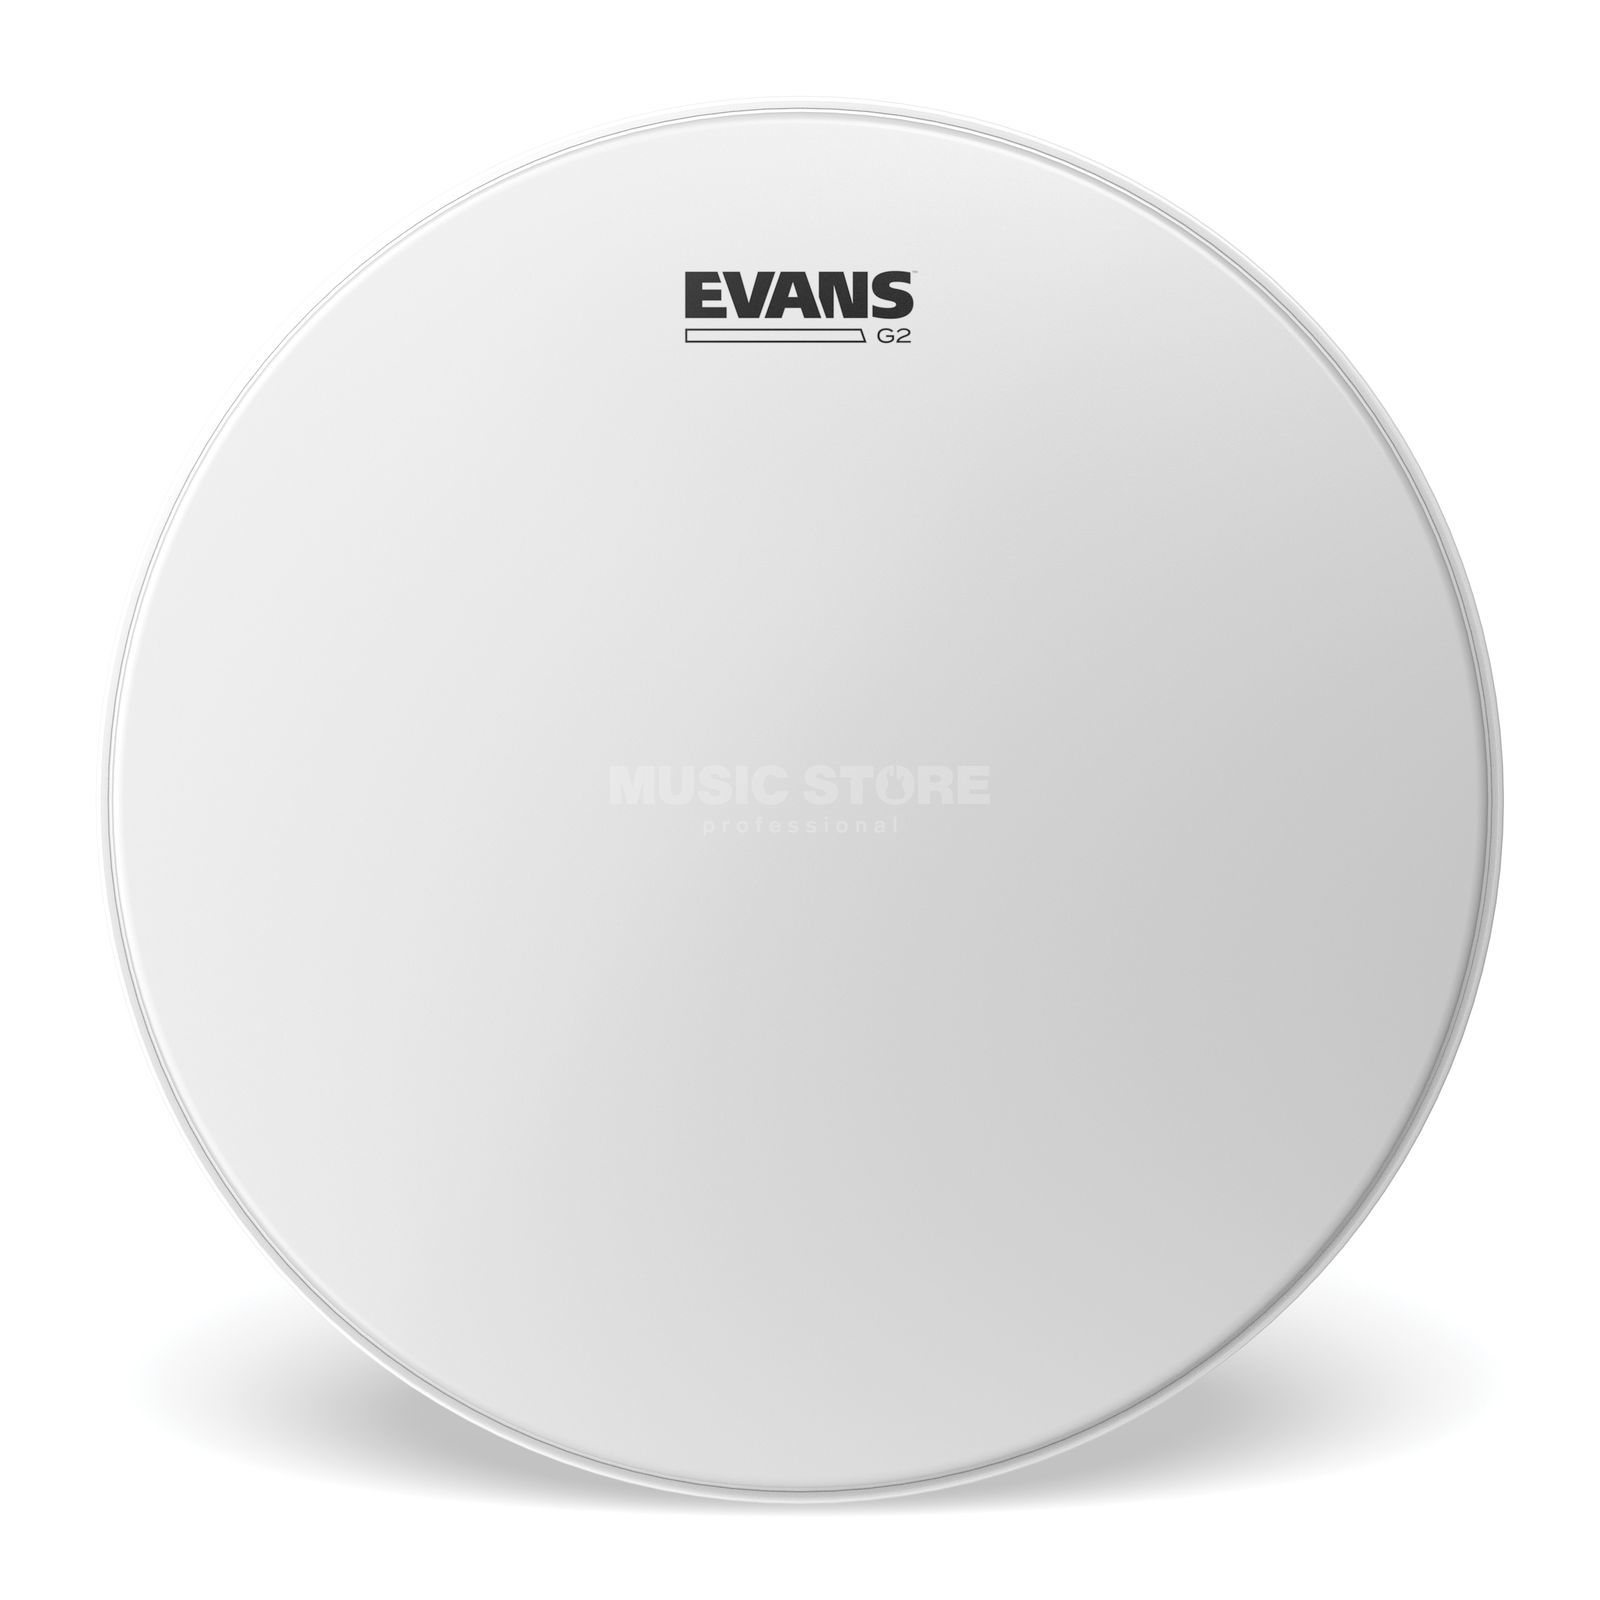 "Evans G2 Coated 8"", B08G2, Tom Batter Product Image"